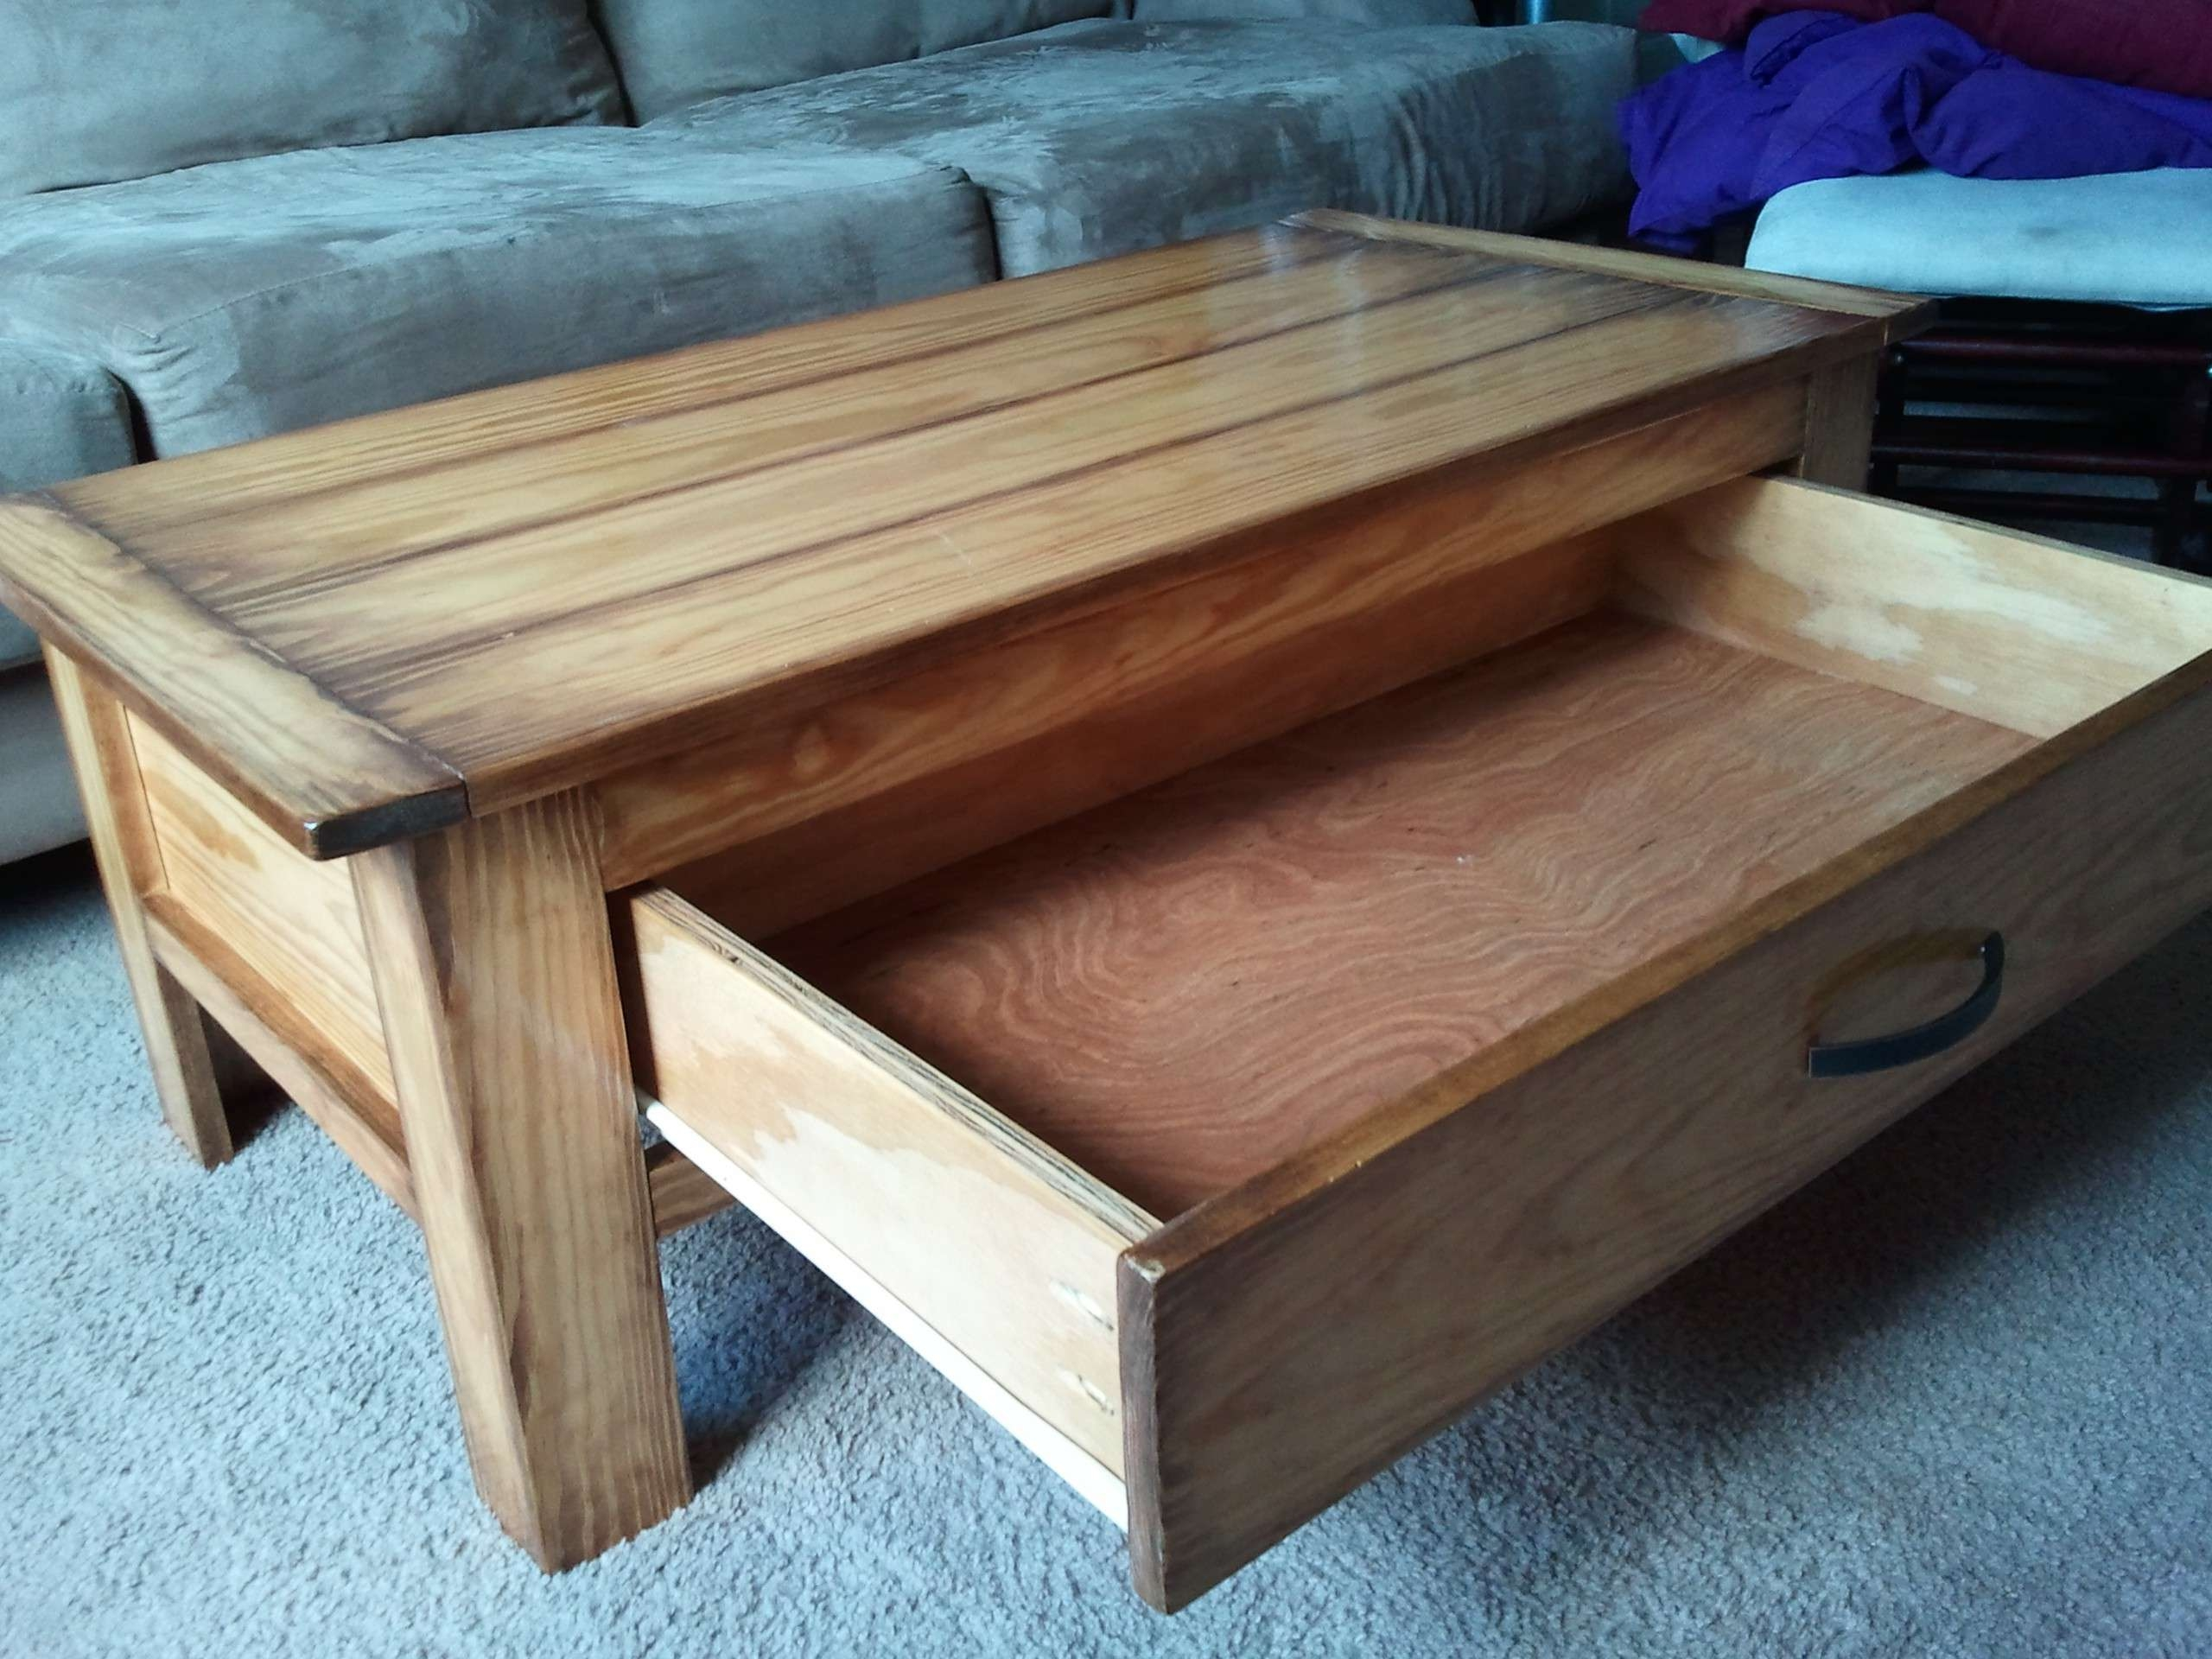 Mesmerizing Small Coffee Tables With Drawers Bring Astounding Pertaining To 2018 Small Coffee Tables With Drawer (View 9 of 20)